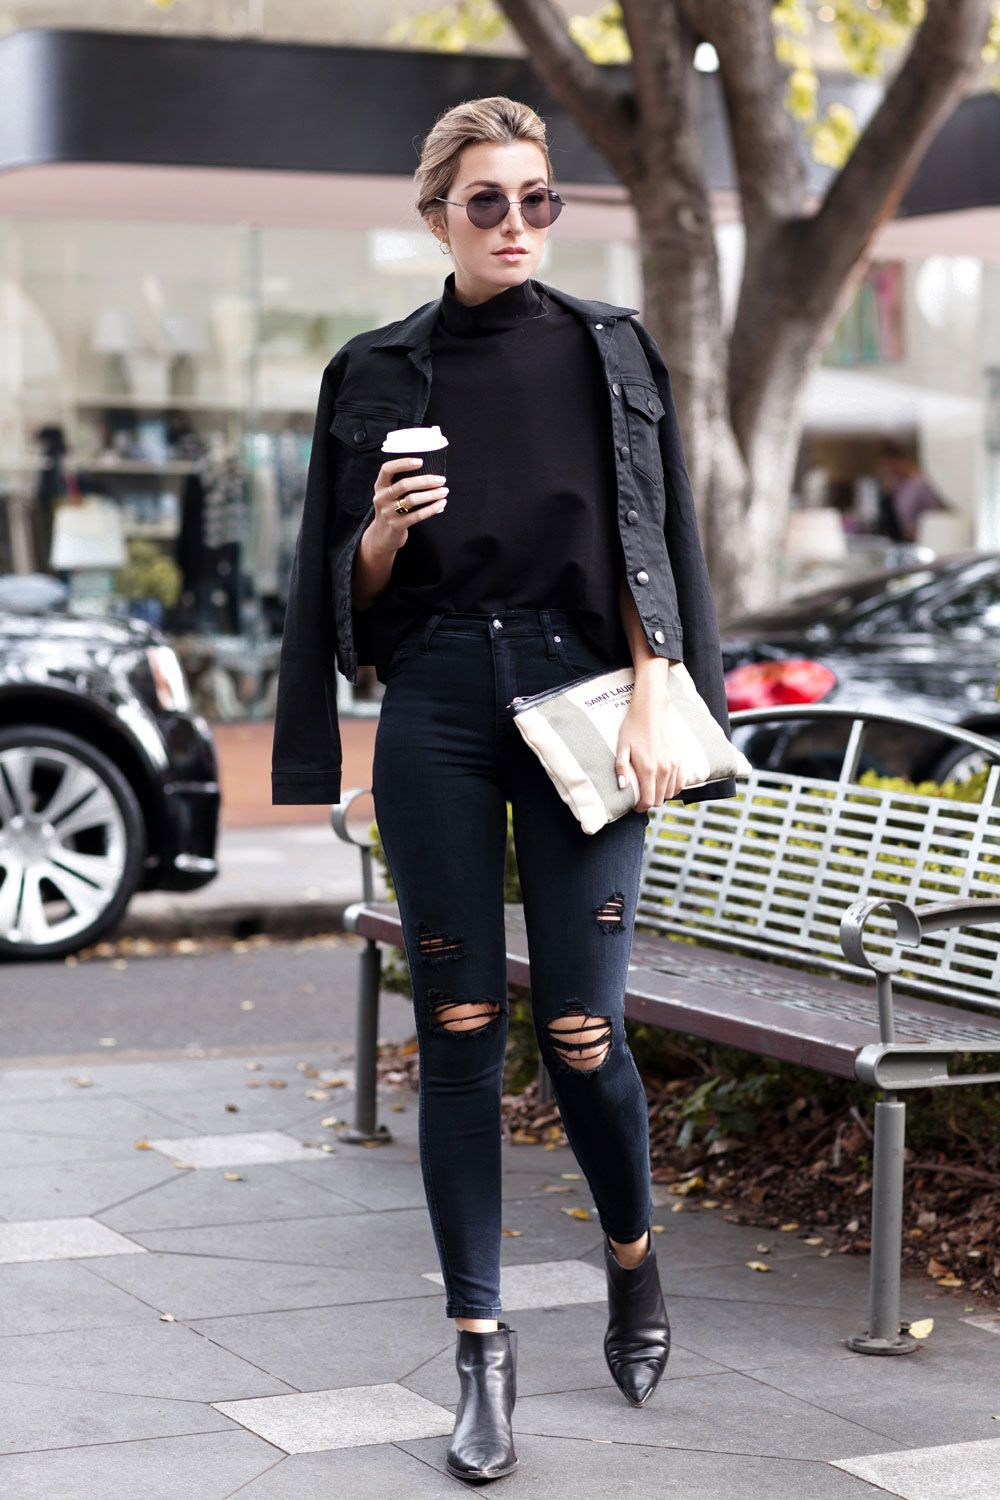 TCOH  3 cool (and unique!) ways to wear black denim now   I spy ... 30d5b6e37b